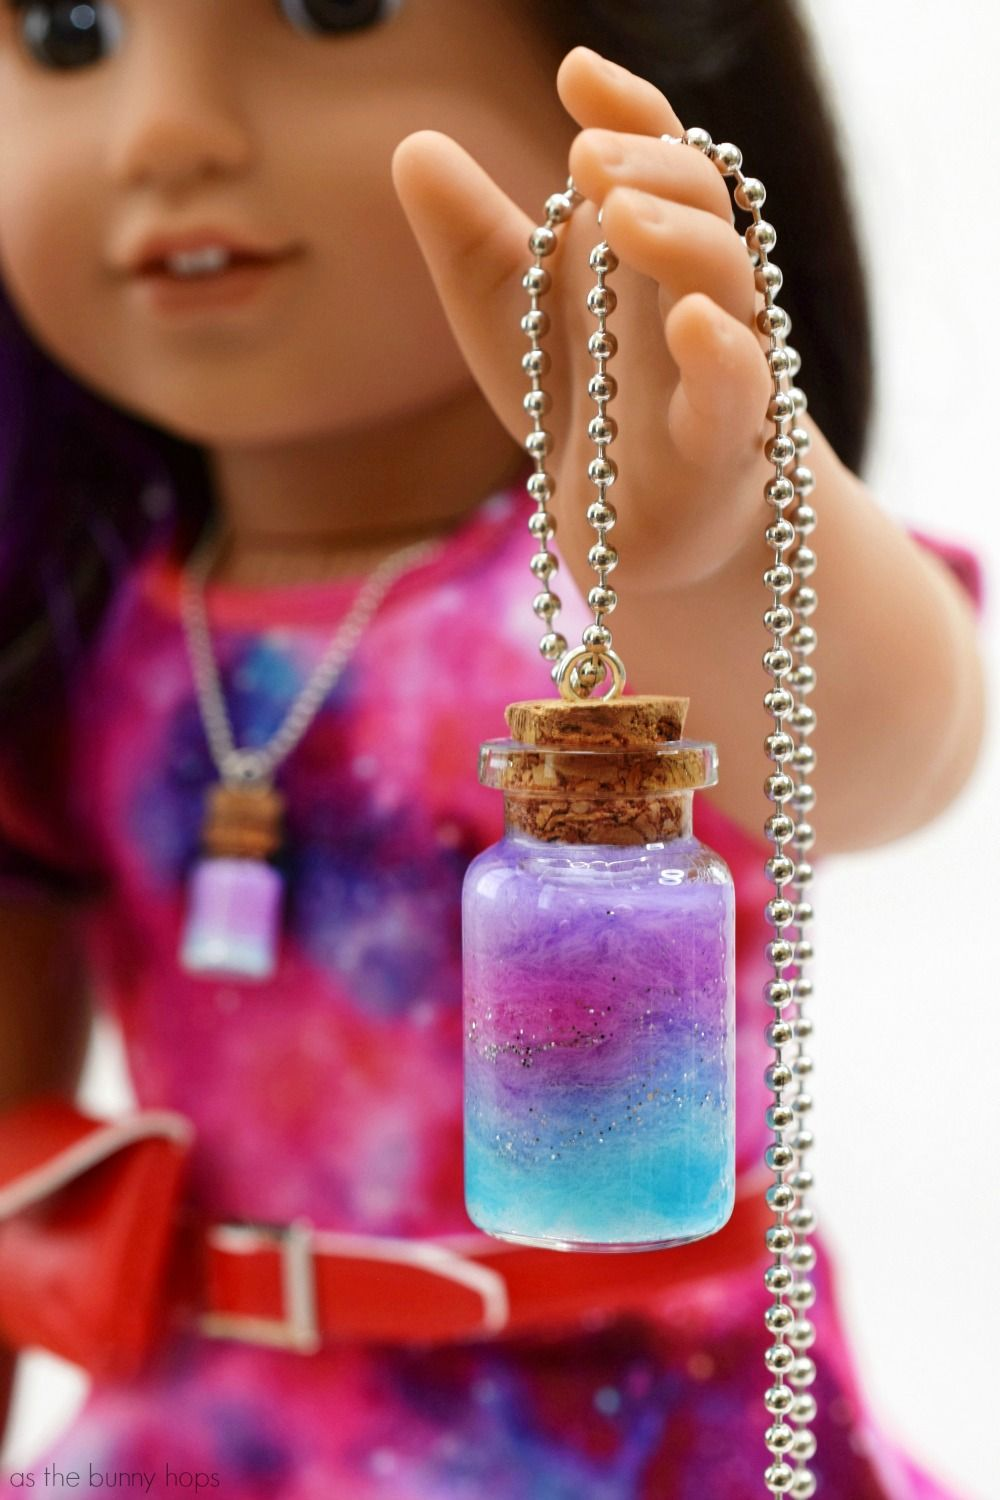 American Girl's Luciana Vega-Inspired Doll and Me Nebula Pendants - As The Bunny Hops